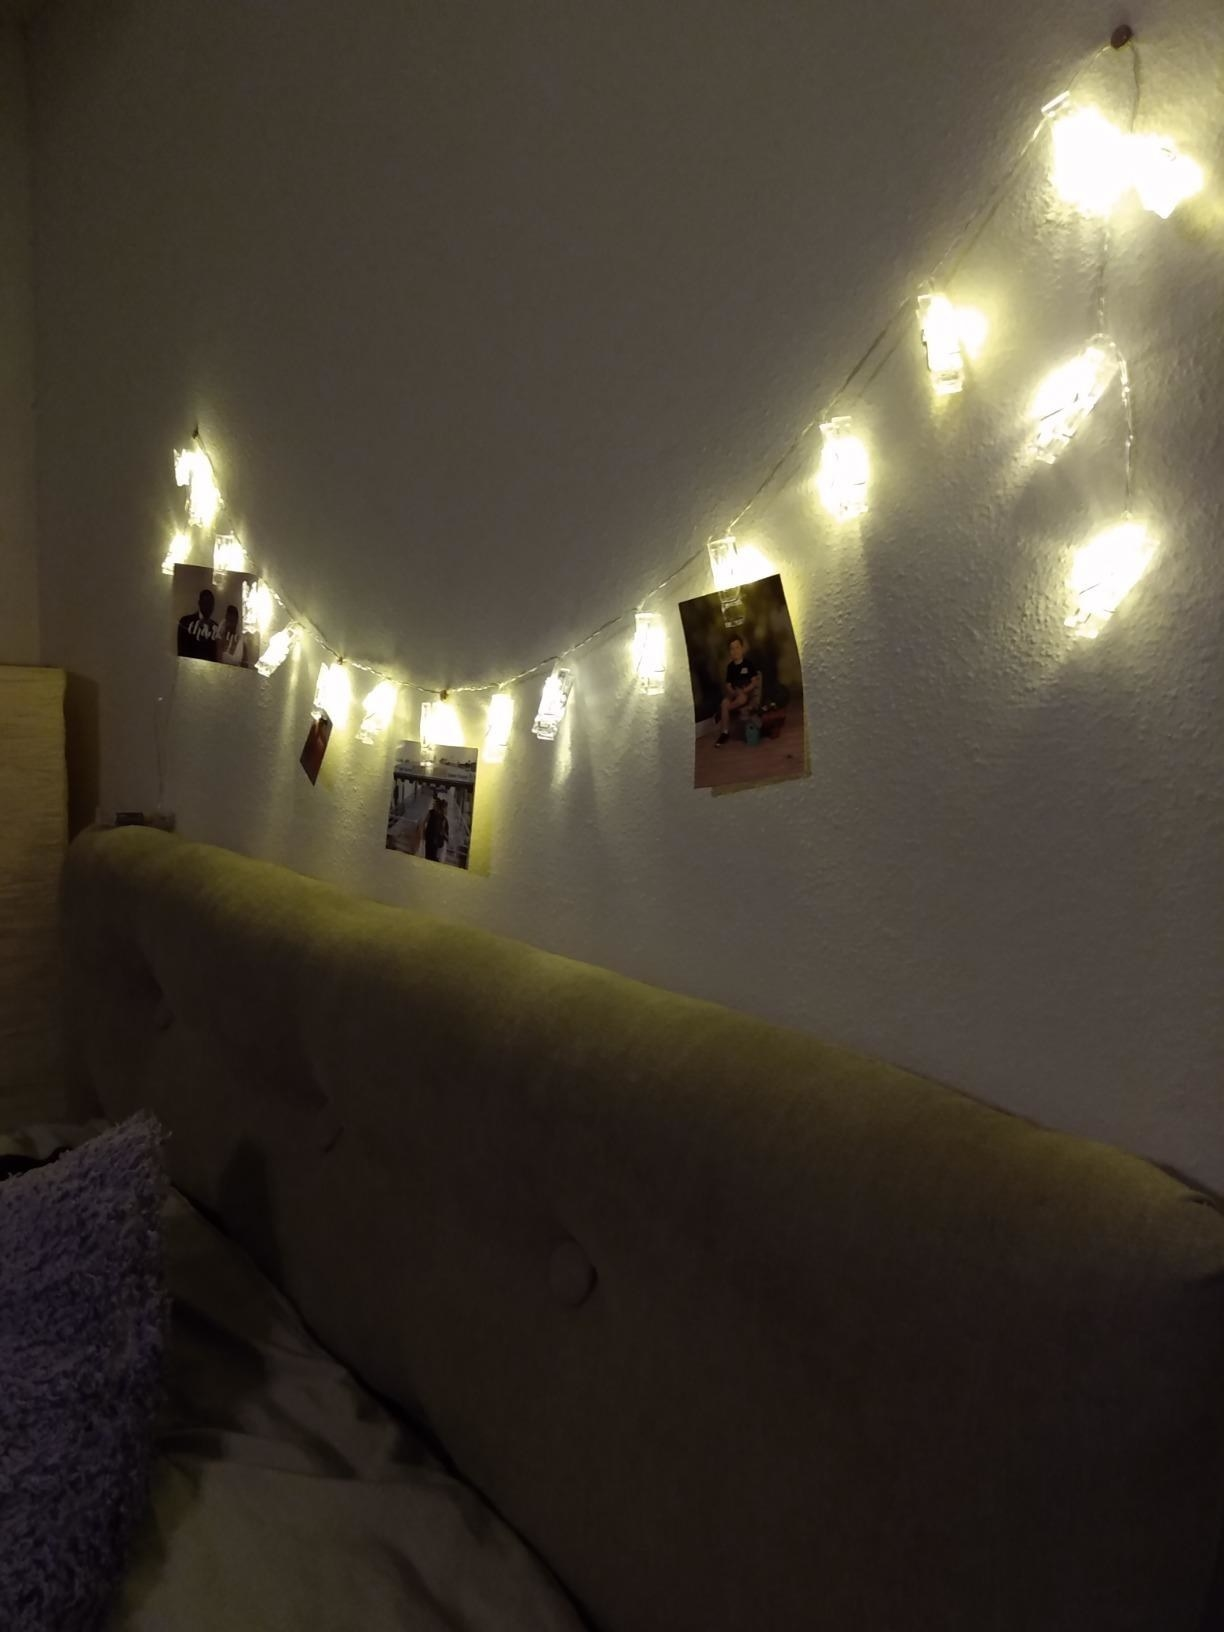 The lights, illuminated and hung from a wall, with a few photos hanging from the clips